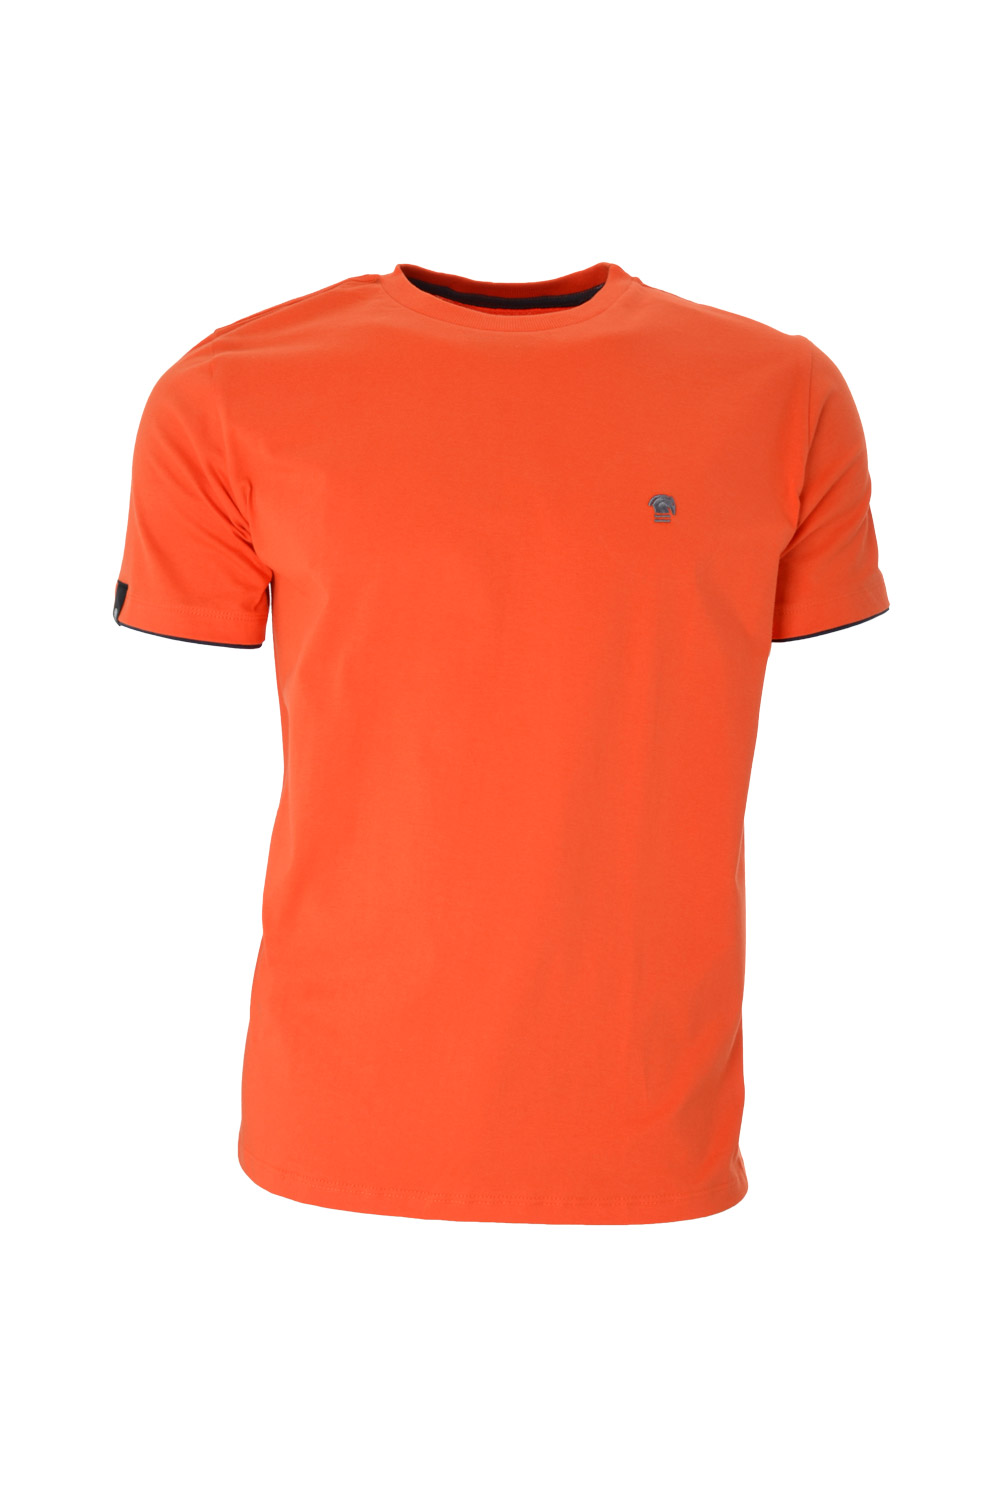 CAMISETA MC BLUES SUPER SLIM ALGODAO GOLA C LISO LARANJA MEDIO